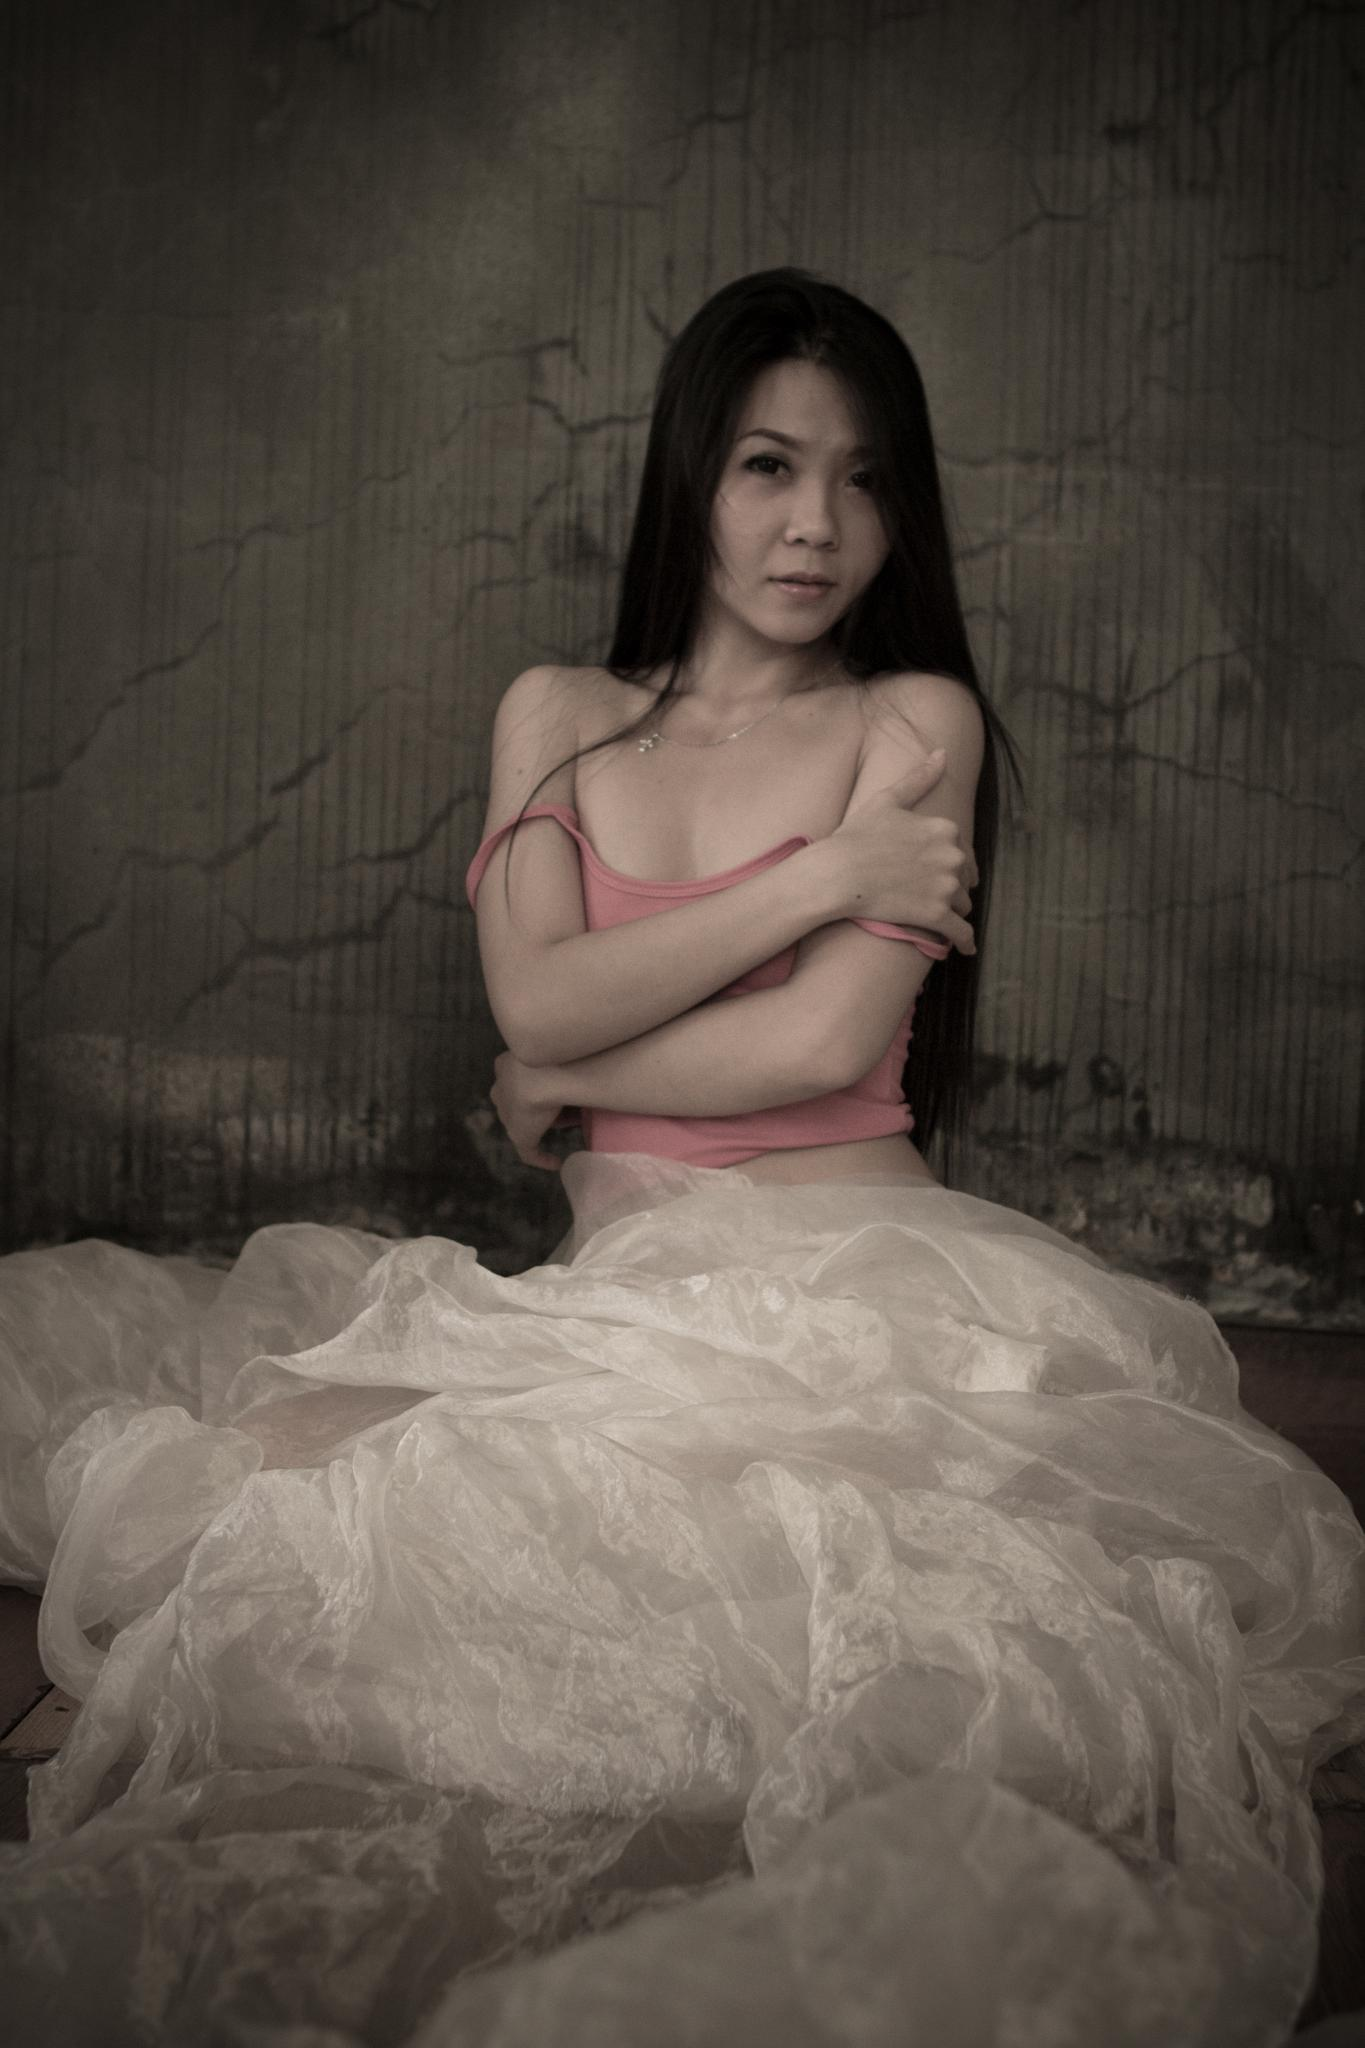 [longing and desire] by Nhat giang